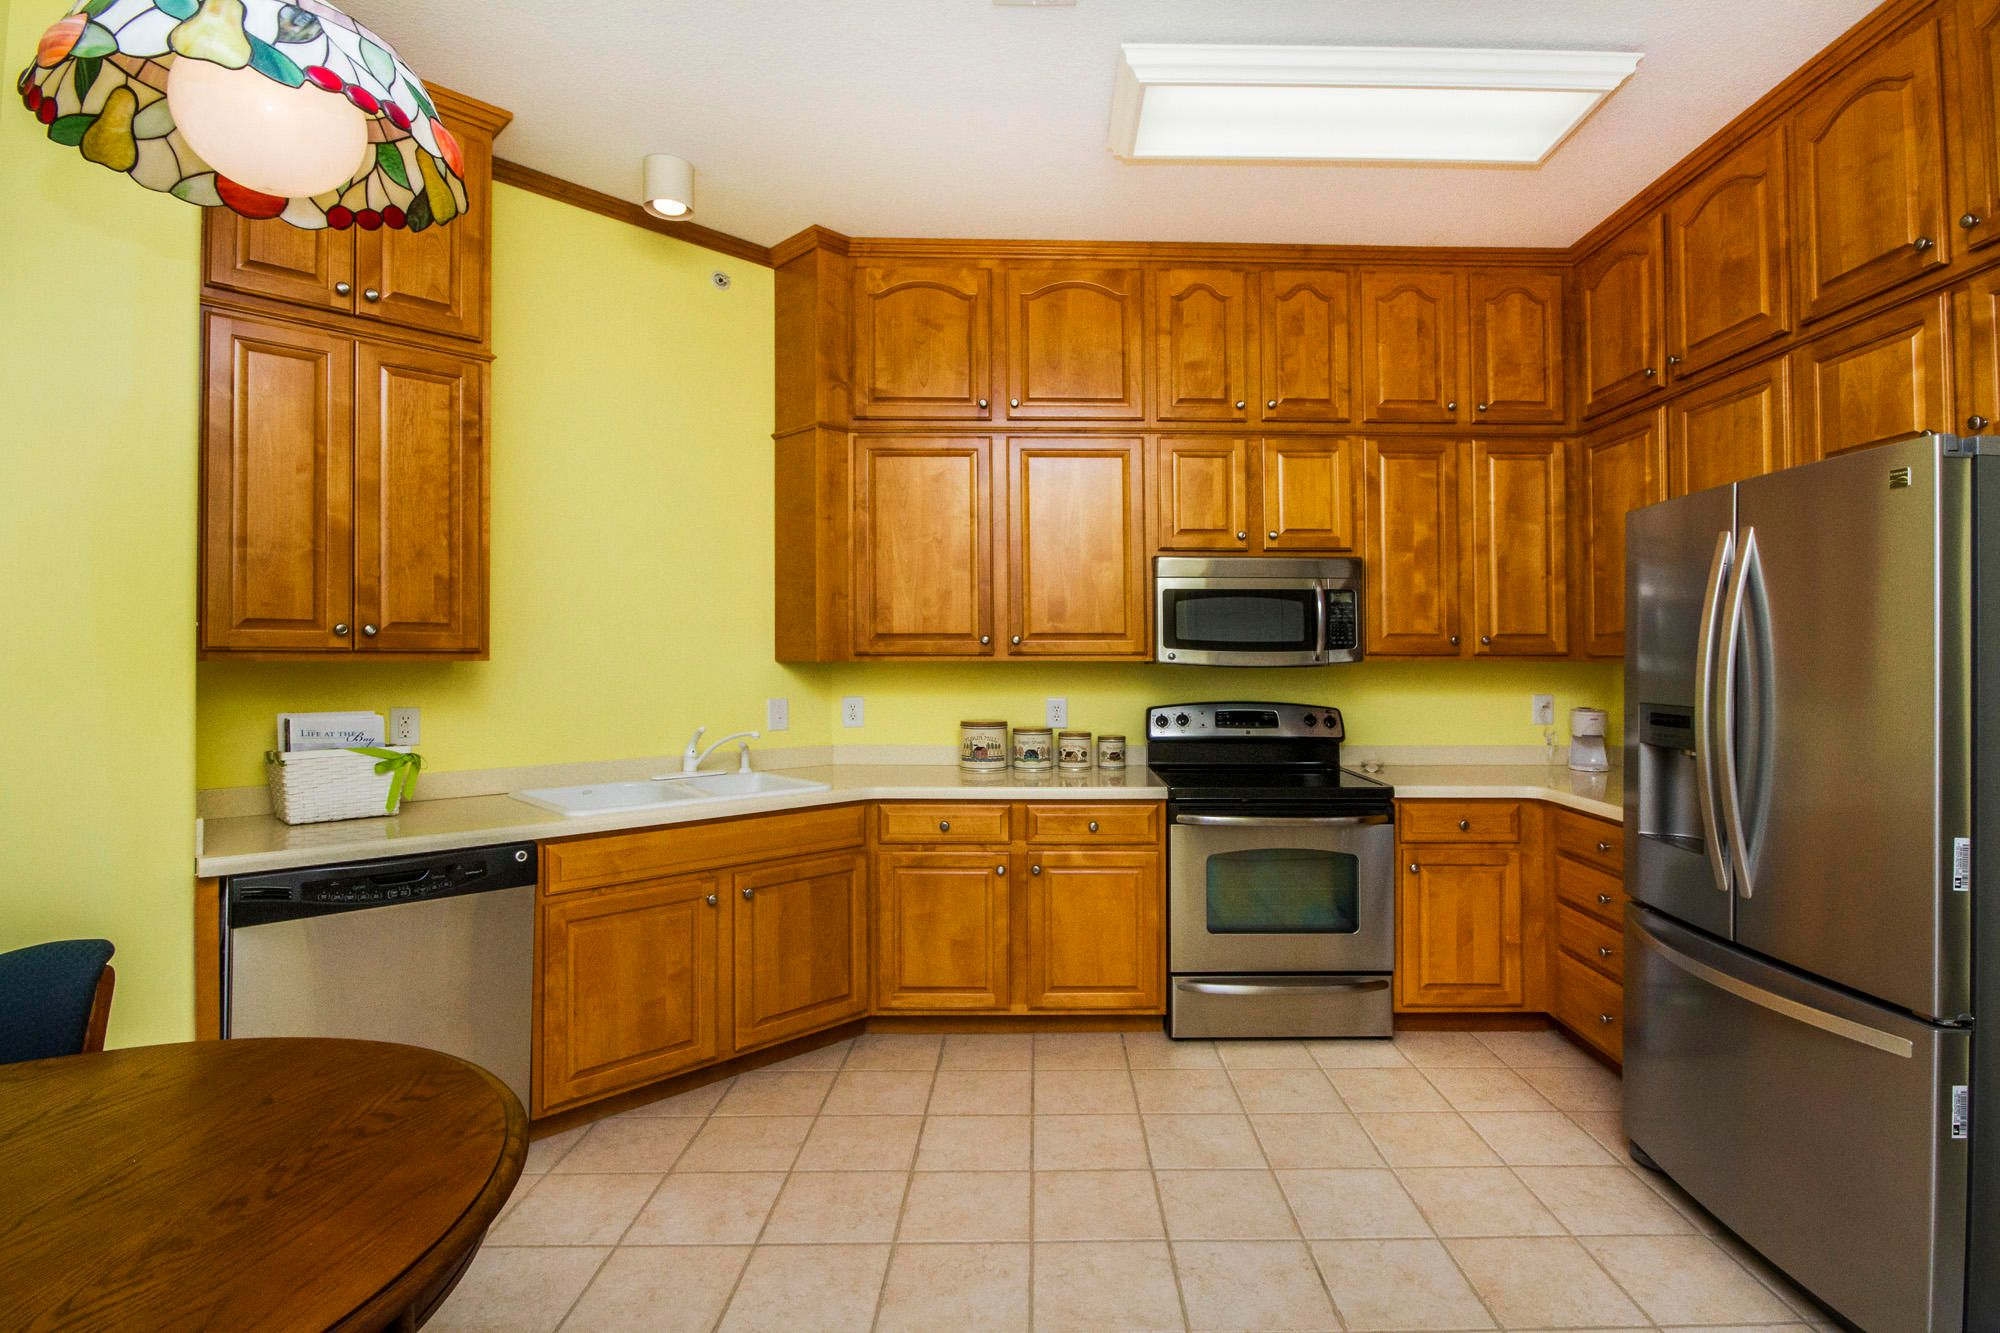 Tall Maple Cabinetry & Corian!